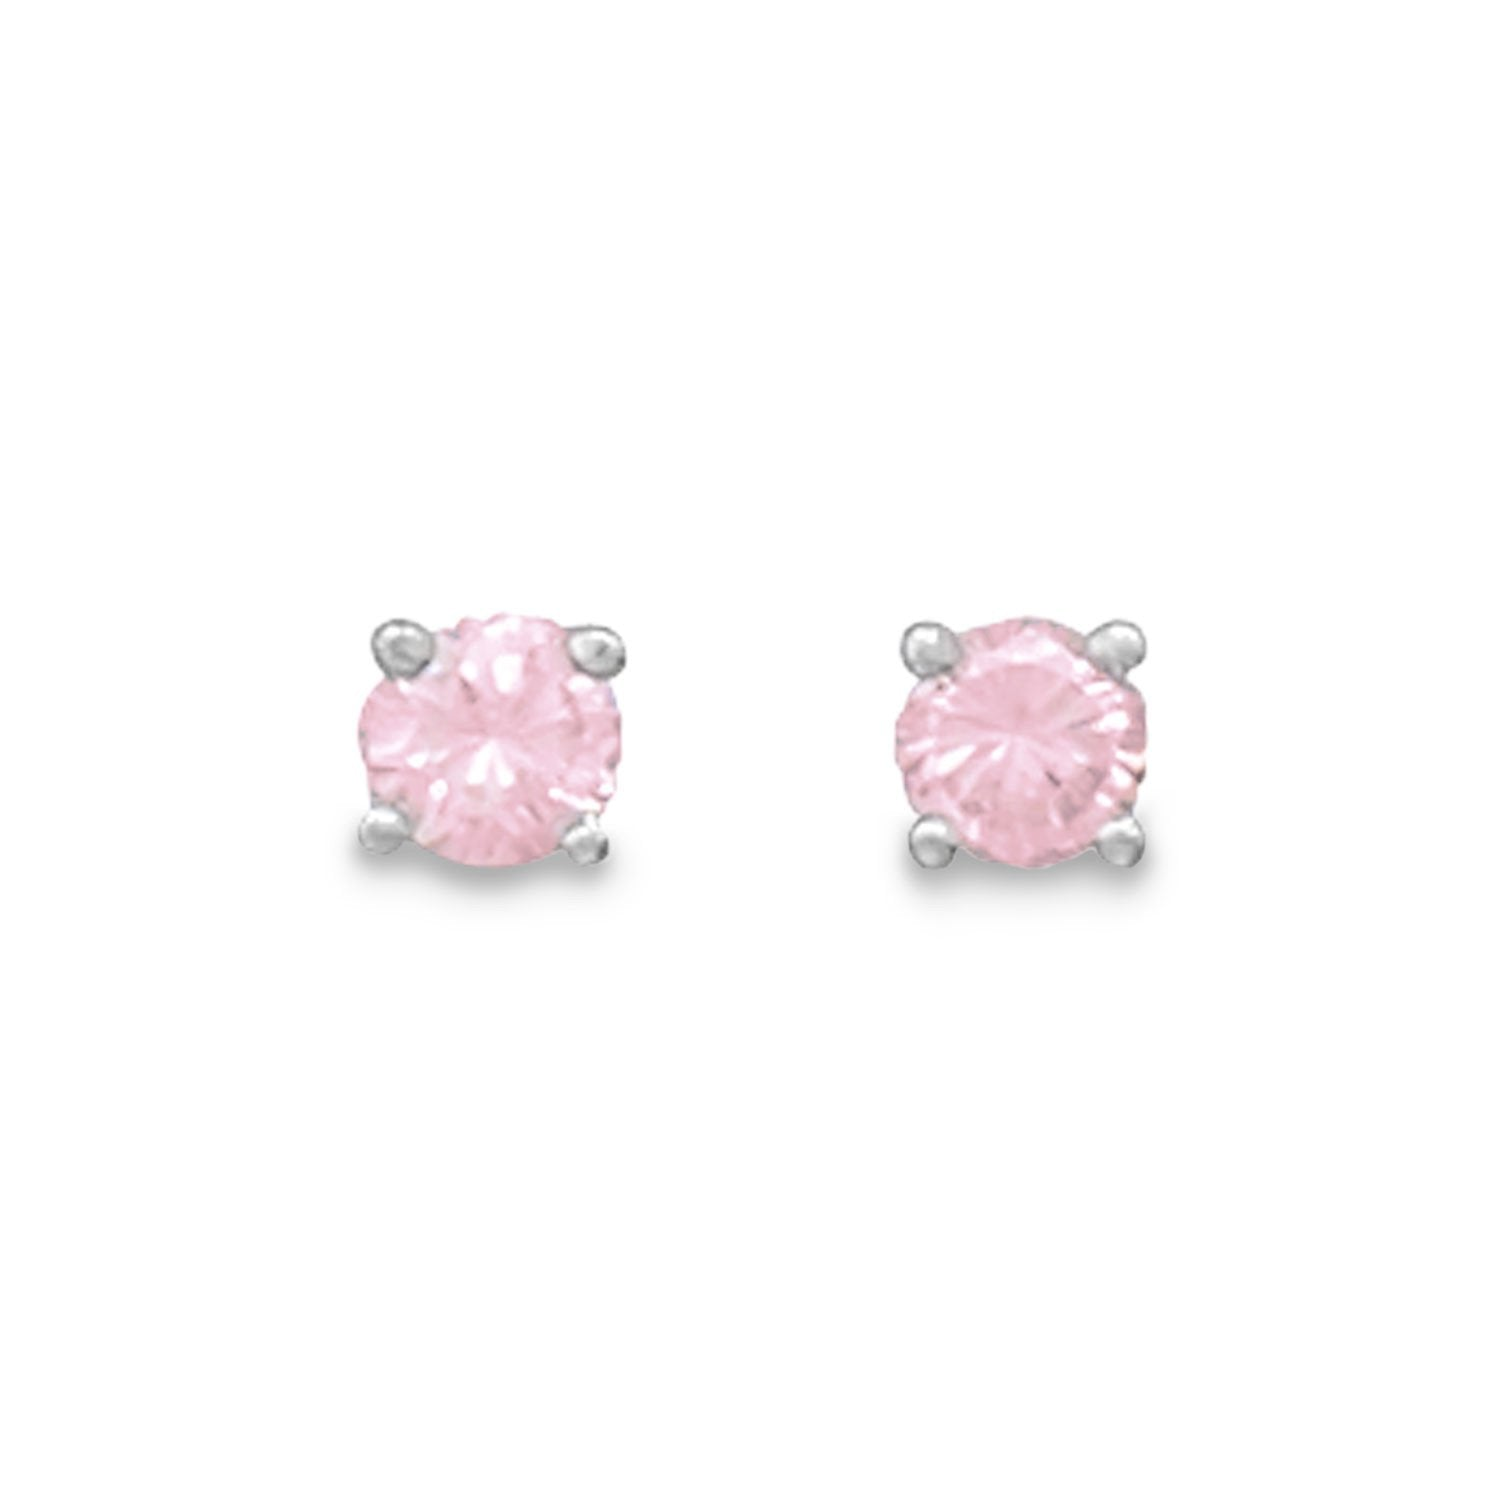 'Ally' Pink CZ Rhodium Plated Stud Earrings